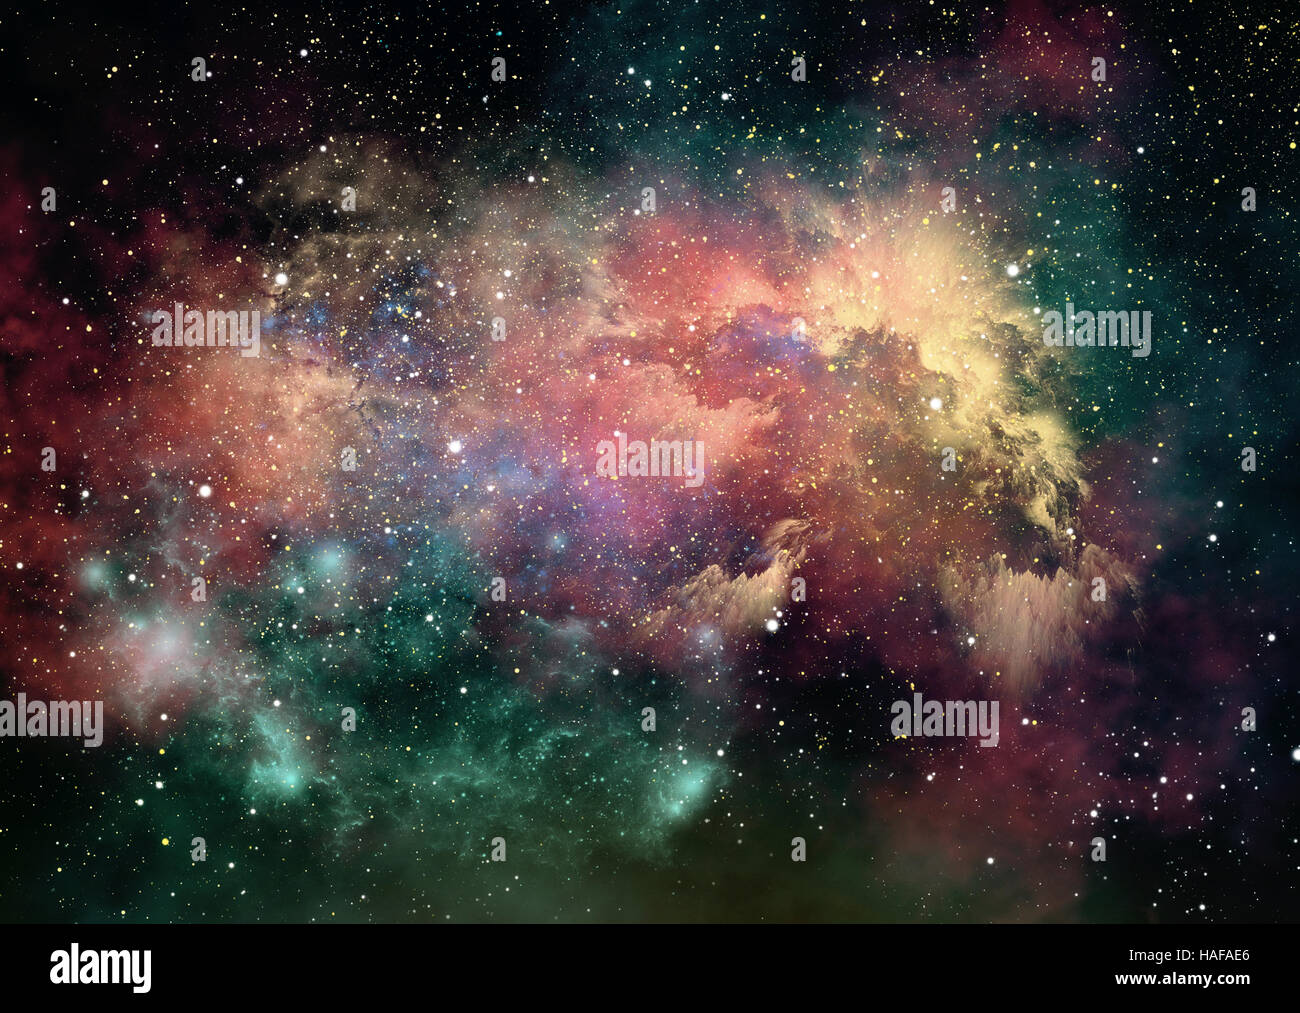 3d computer graphics of nebulae and starry sky in outer space - Stock Image